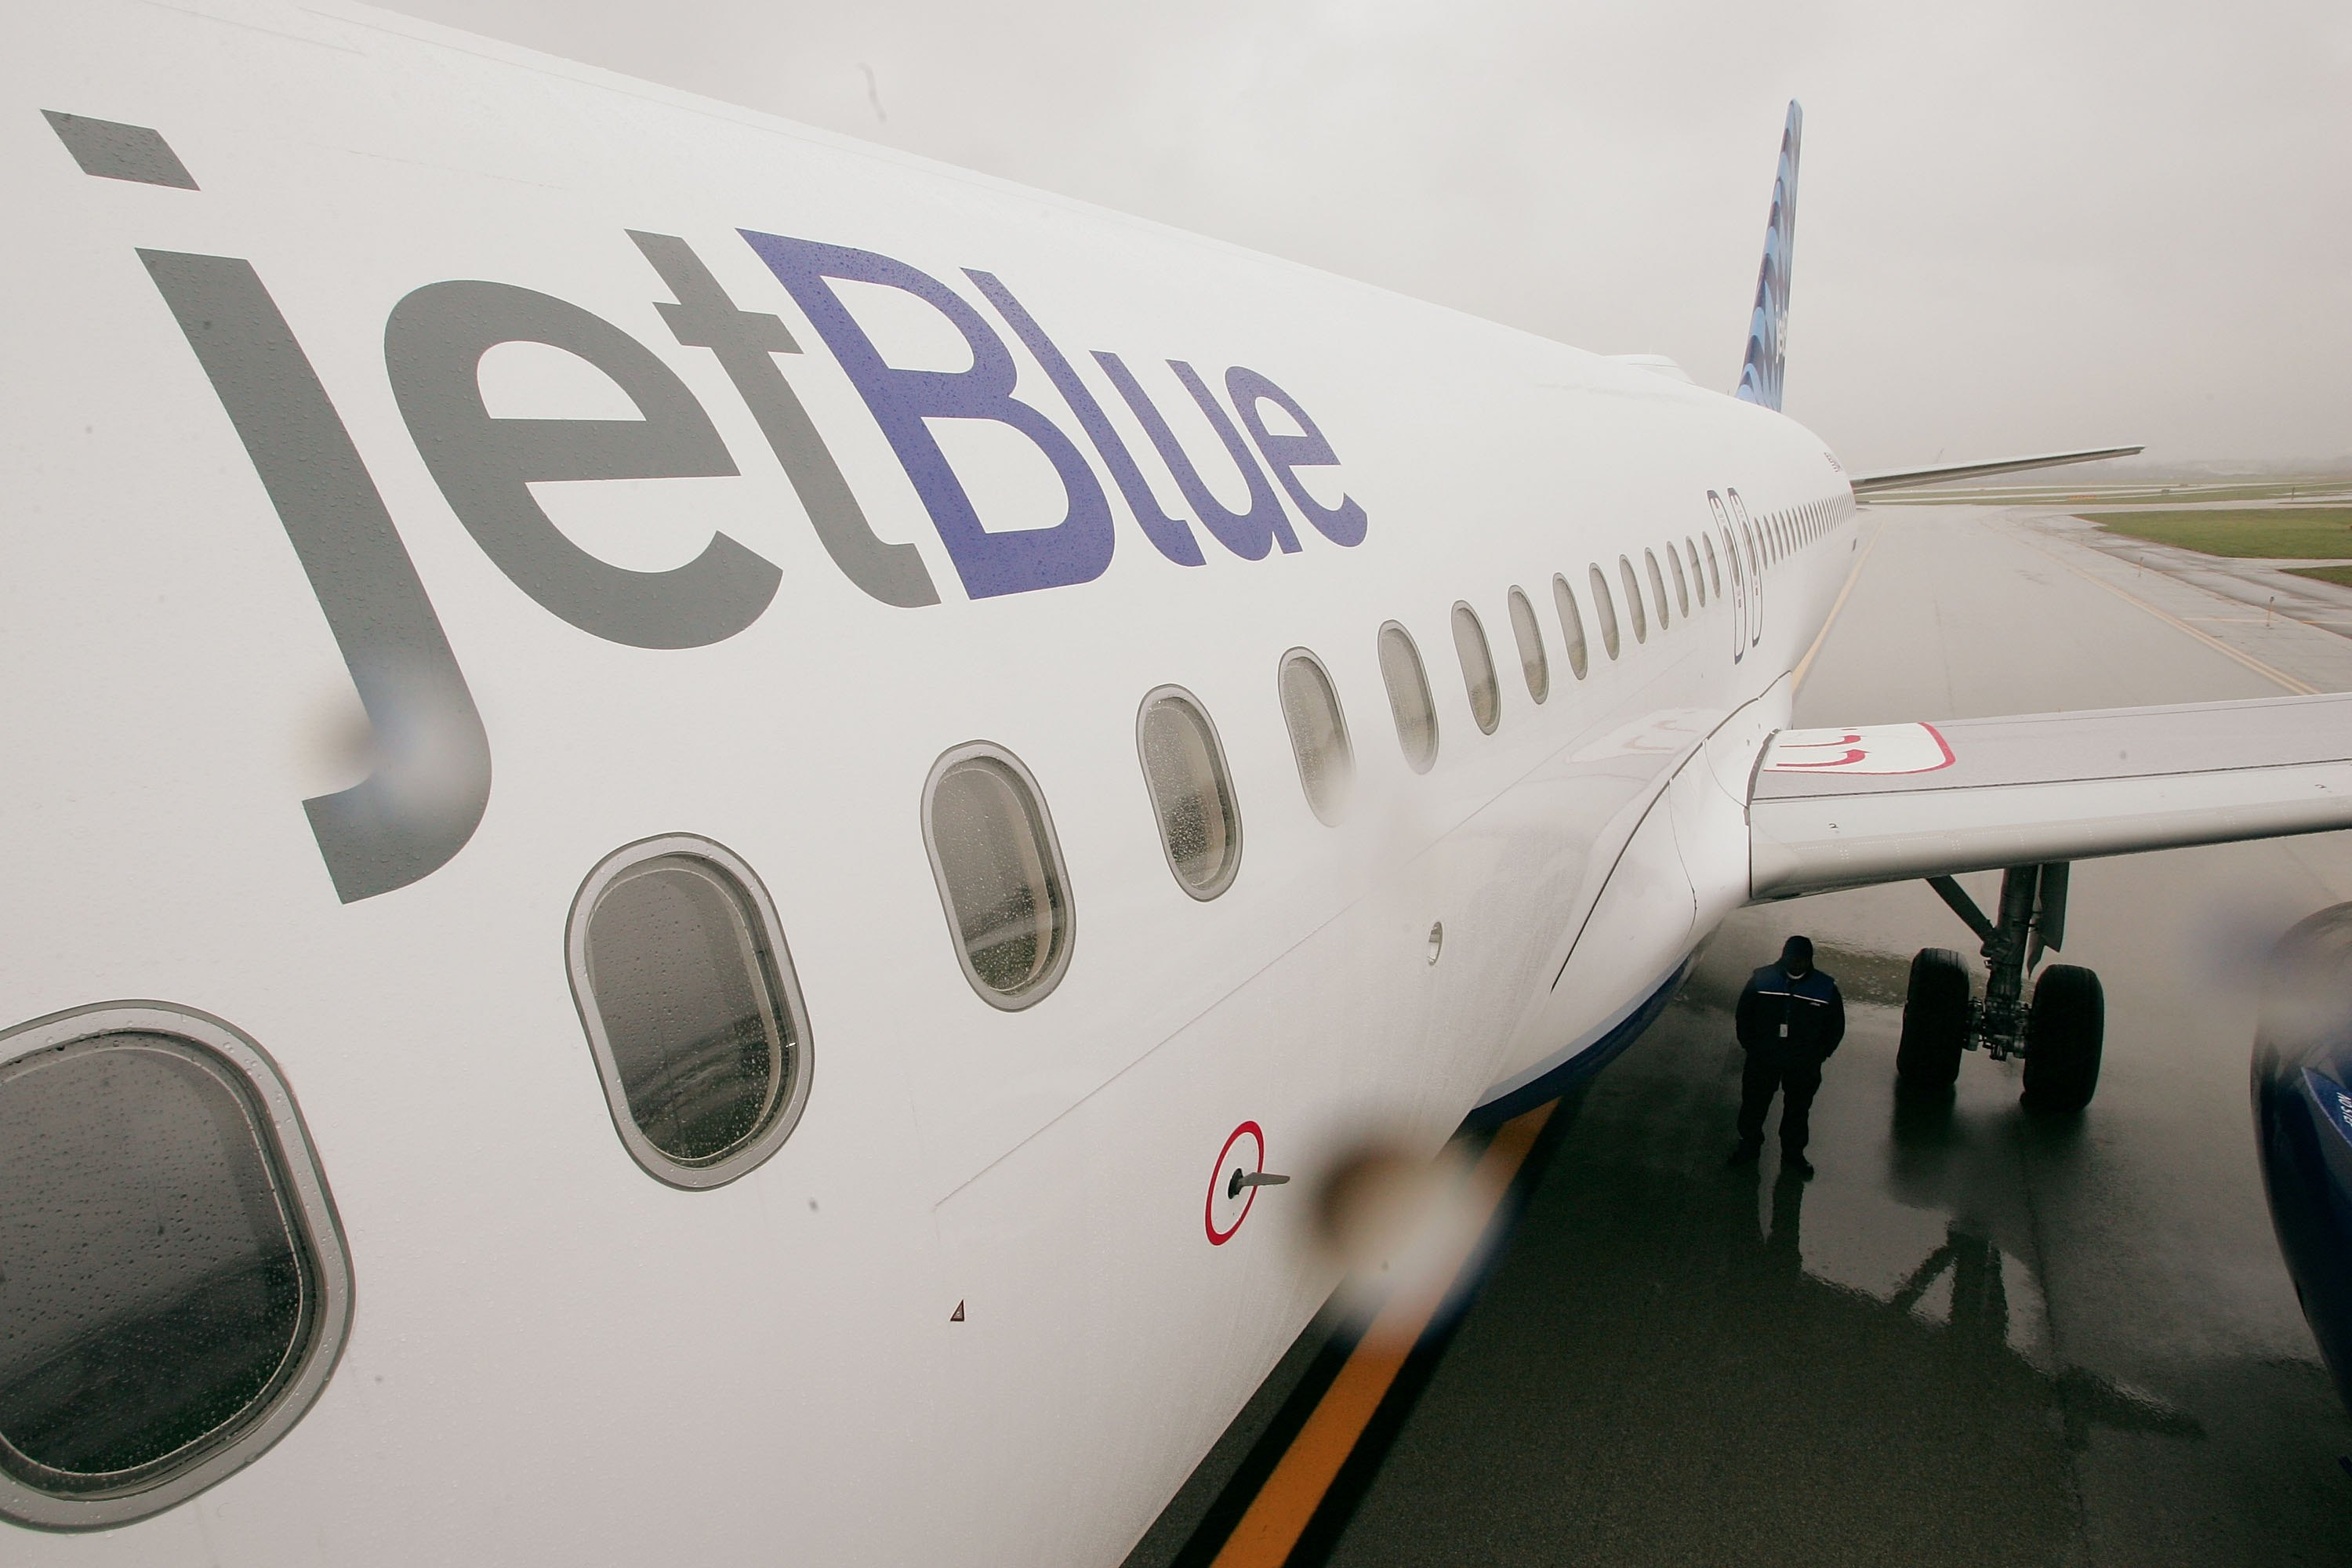 A JetBlue Airways jet sits on the tarmac at O'Hare Airport October 26, 2006 in Chicago, Illinois.